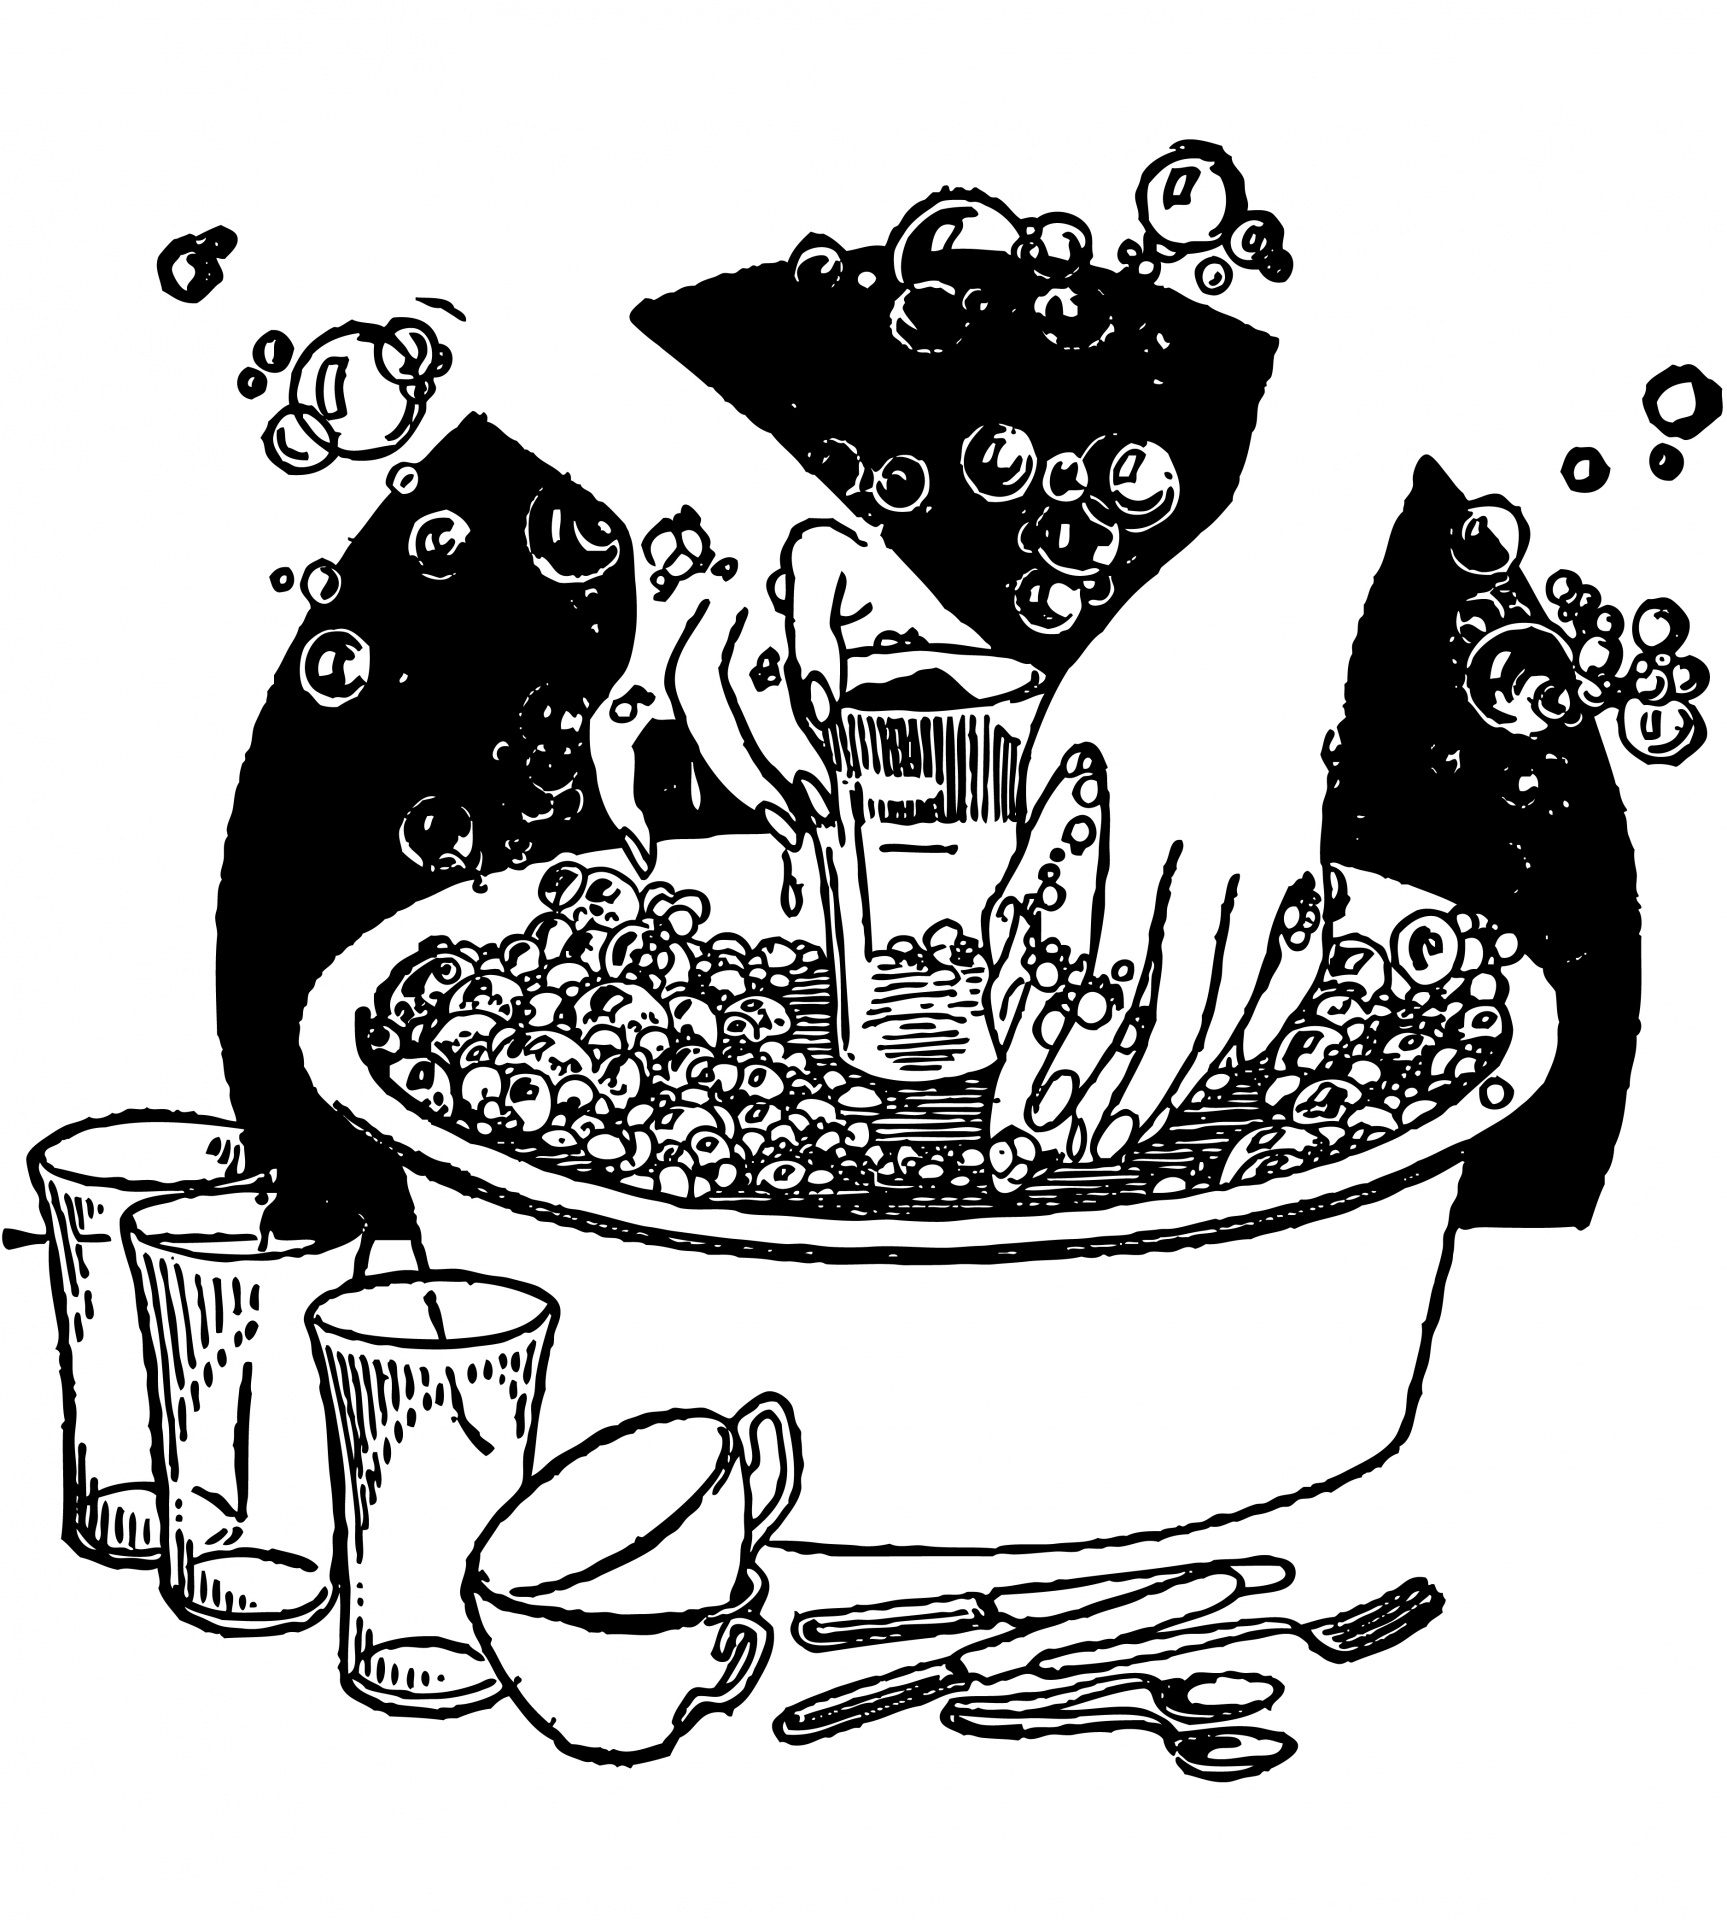 Washing vintage free stock. Dishes clipart